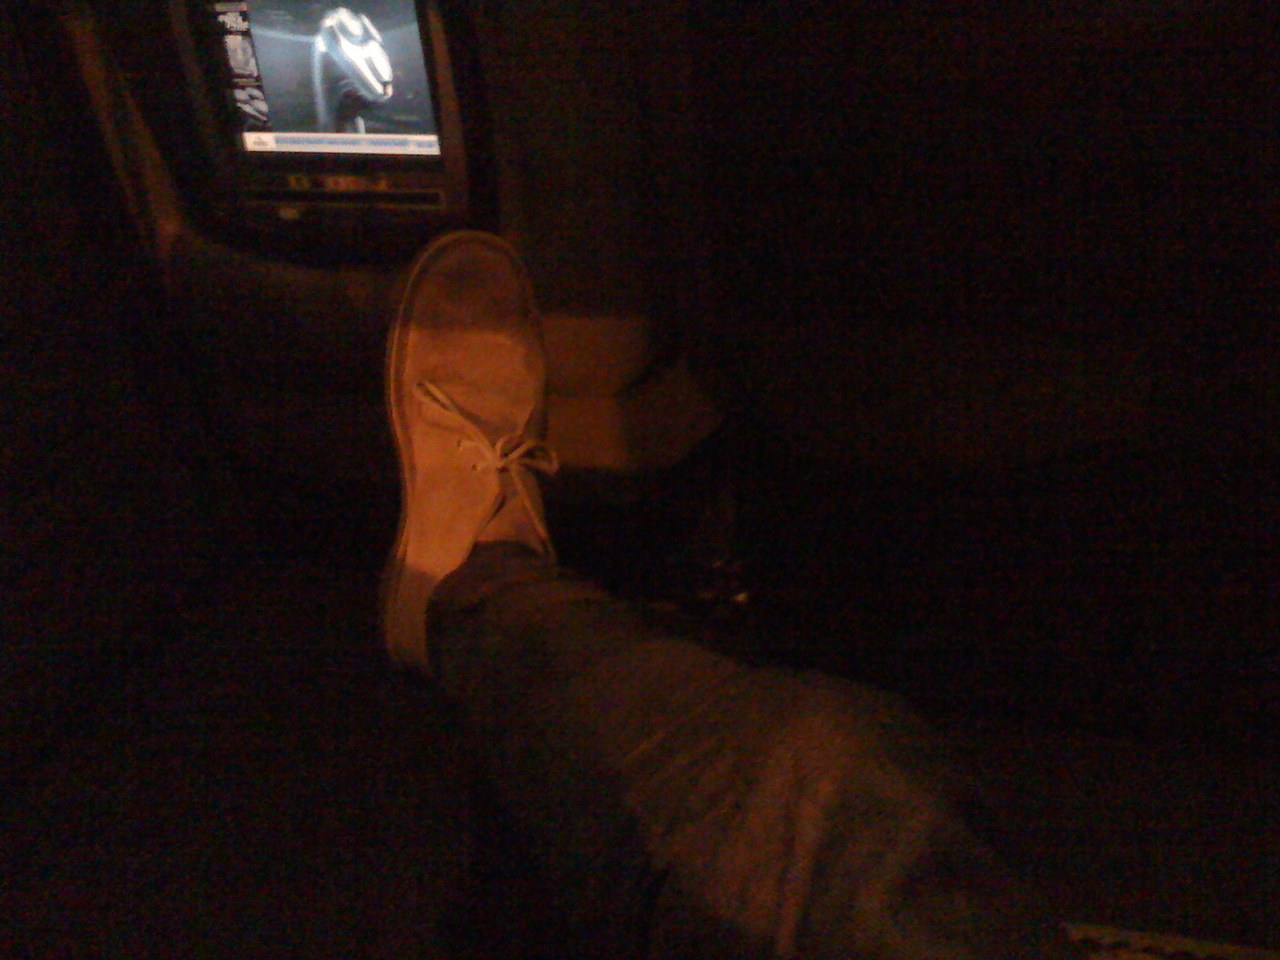 Who loves the handicap taxi vans as much as I dooo? So much leg room!